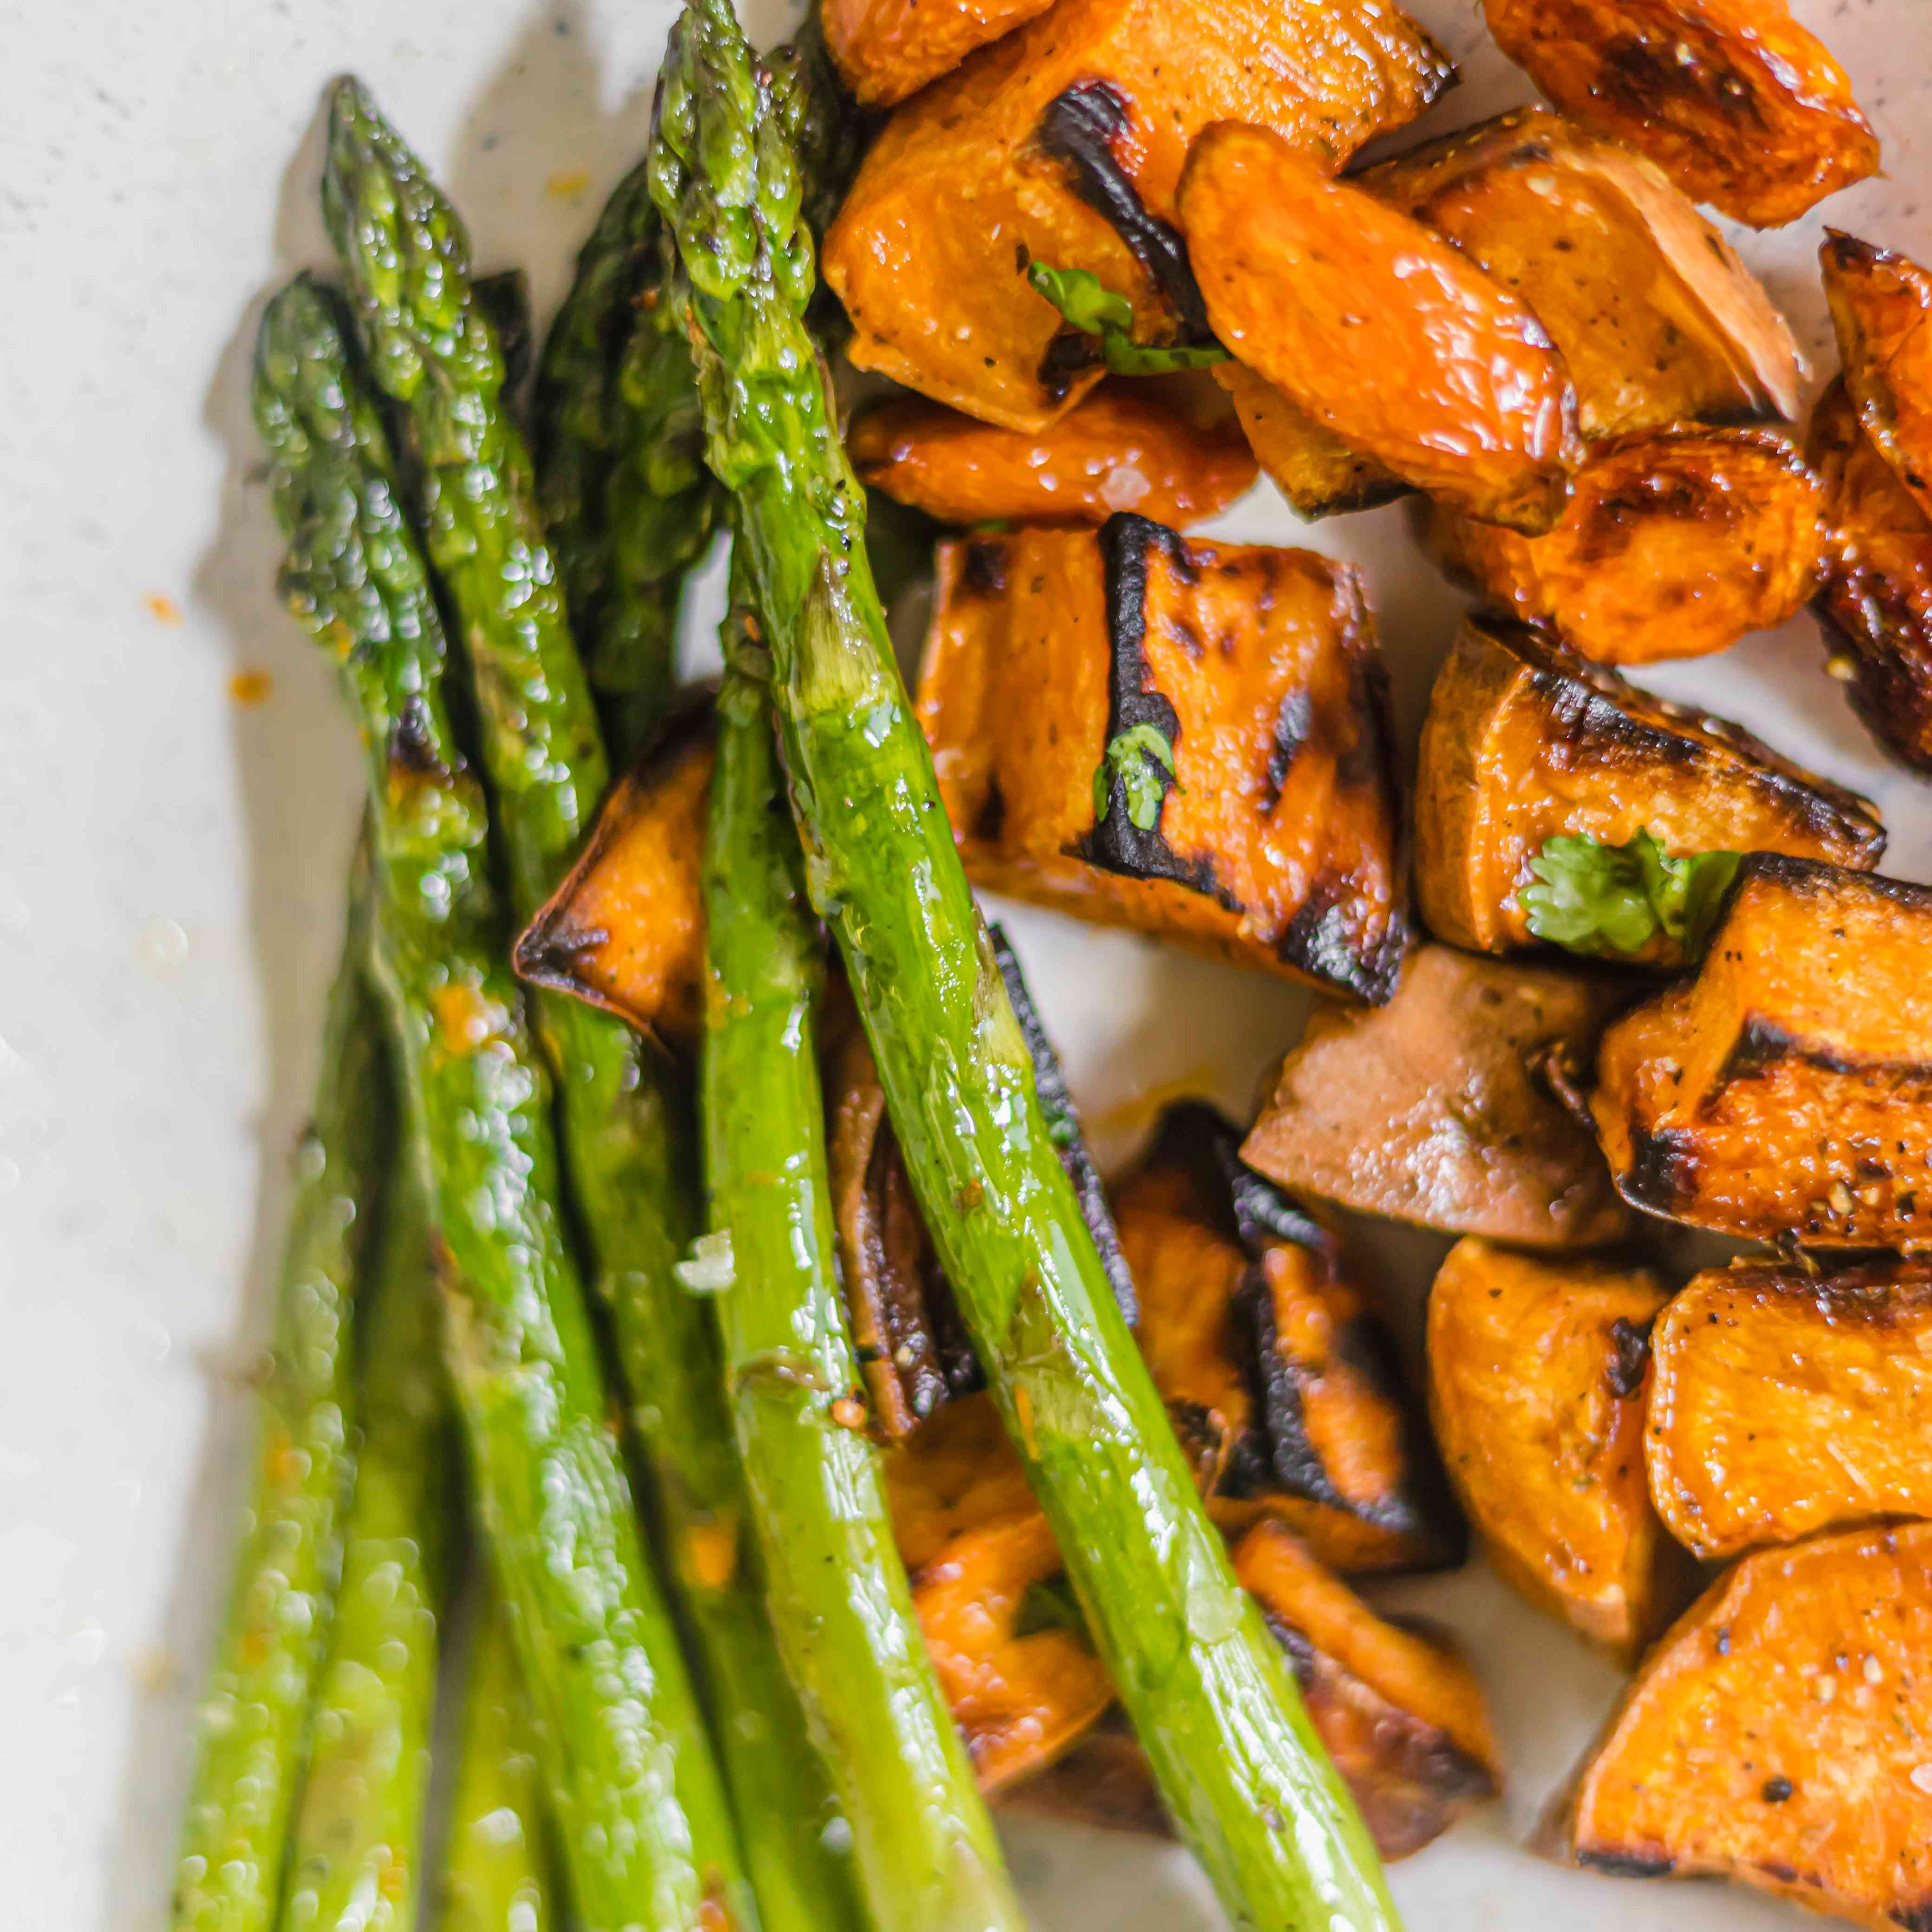 Roasted asparagus and sweet potatoes